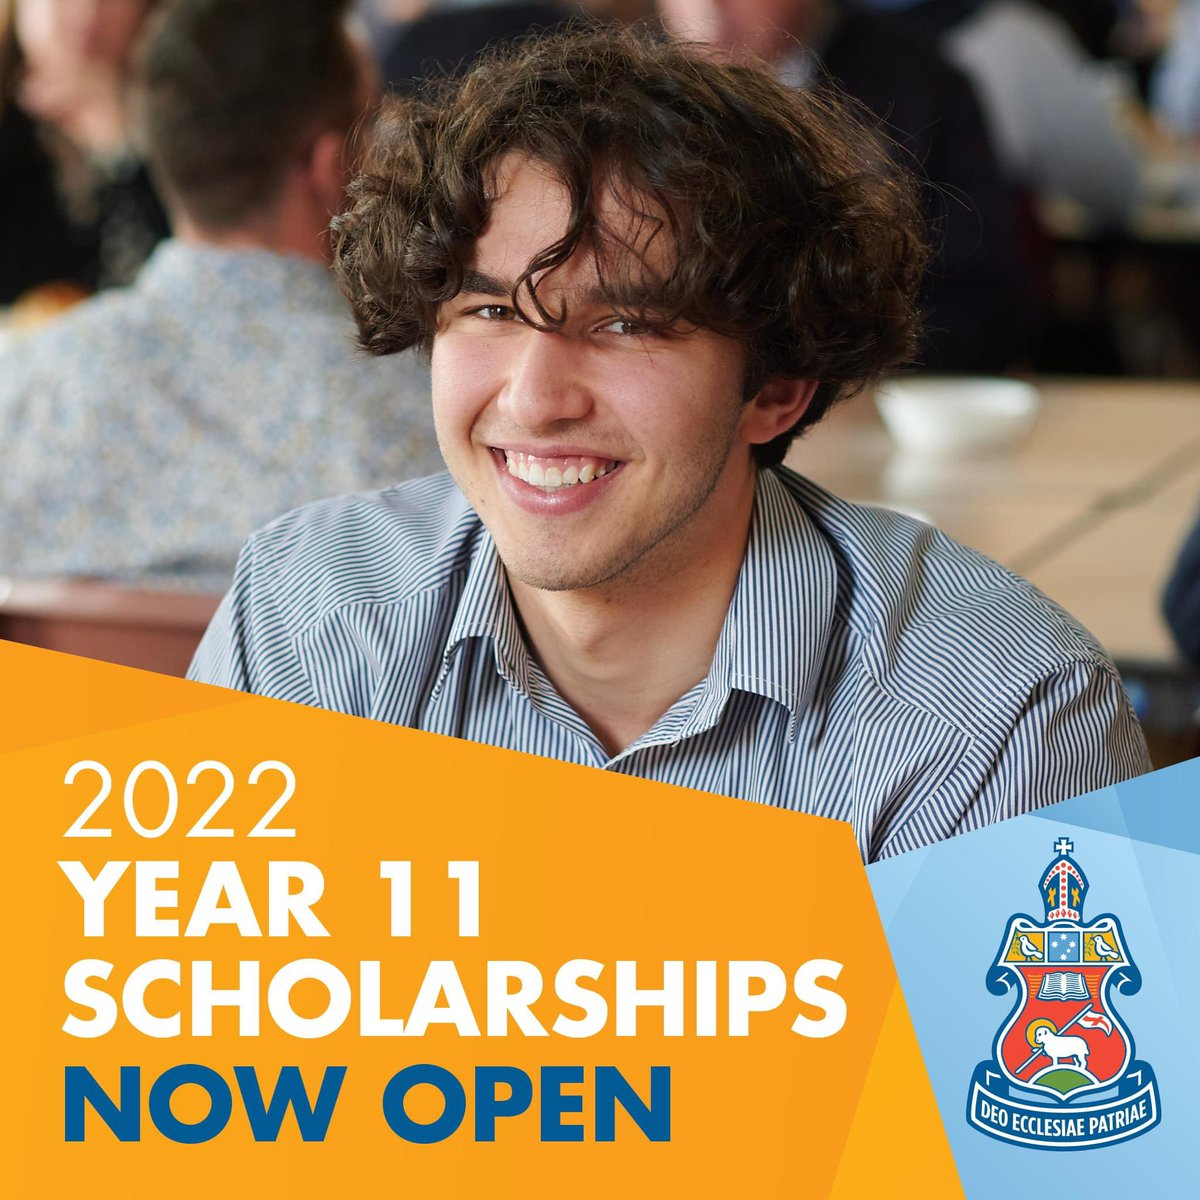 Applications for Year 11 scholarships for 2022 are now open!  Applications close on the 22nd of March next year, so it's time to start preparing.  For more information, visit our website here: https://t.co/uIszXa0wvT